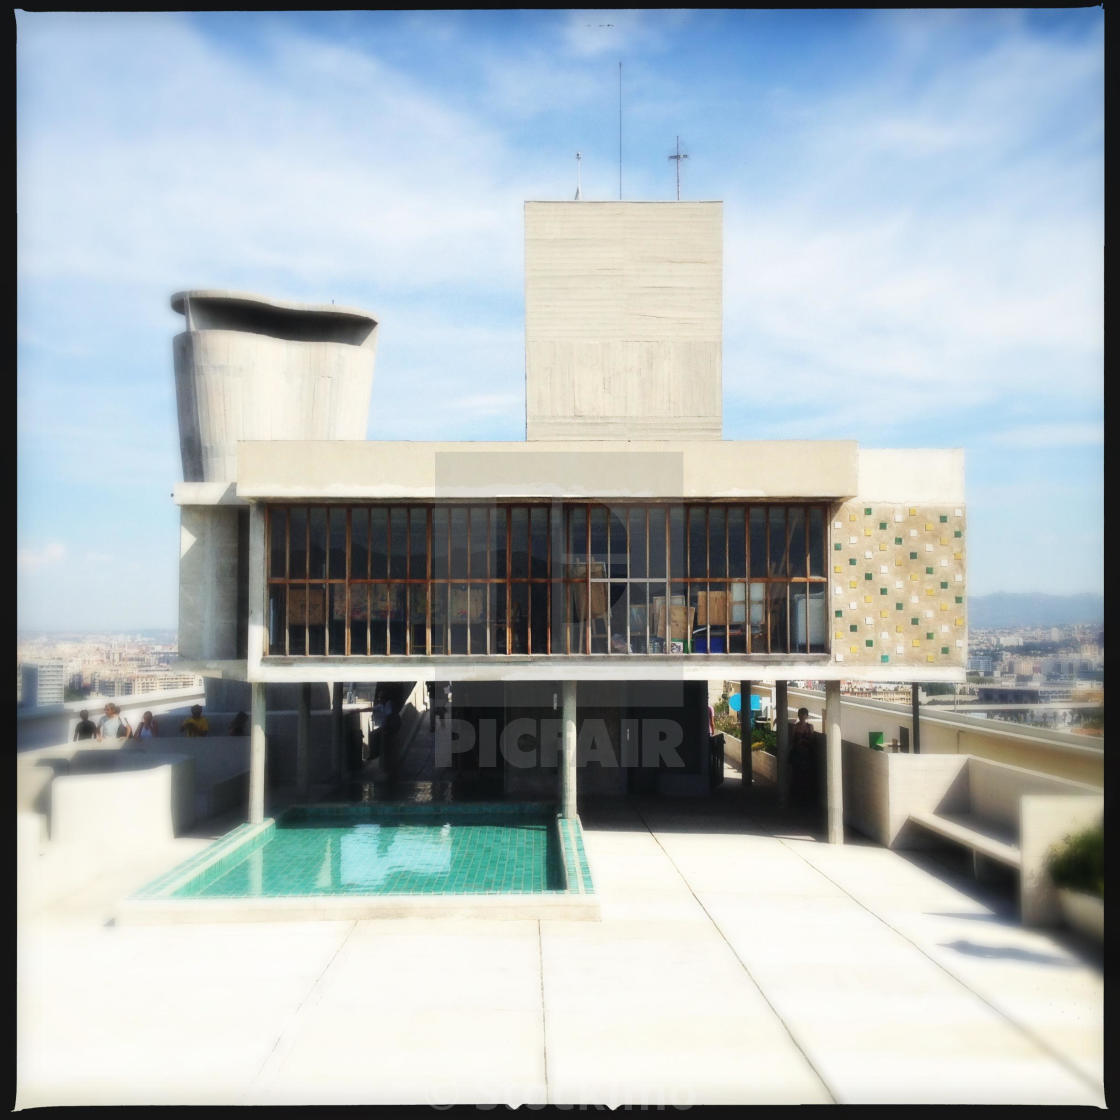 Le Corbusier Unite D Habitation the school and paddling pool on the roof of le corbusier's